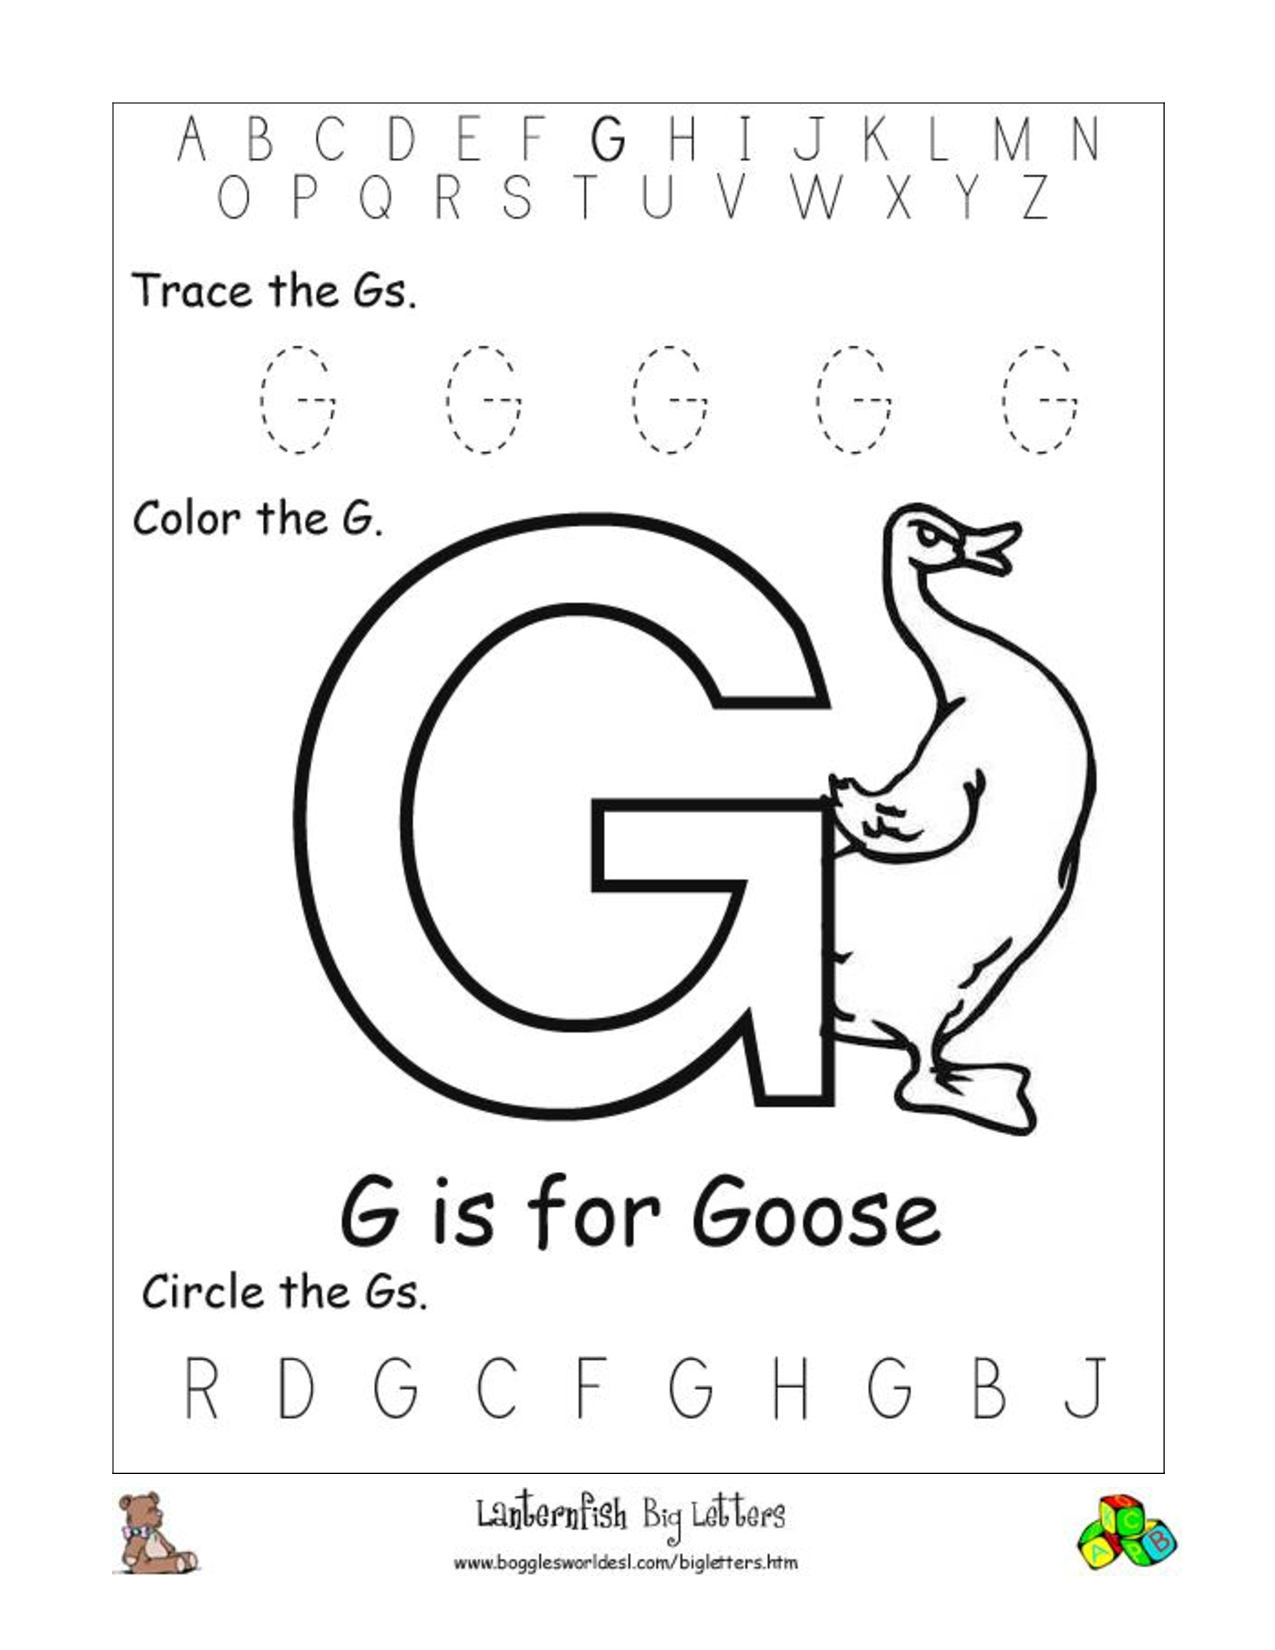 Coloring sheet letter g - Letter G Coloring Sheet Eume The For Goose Lowercase